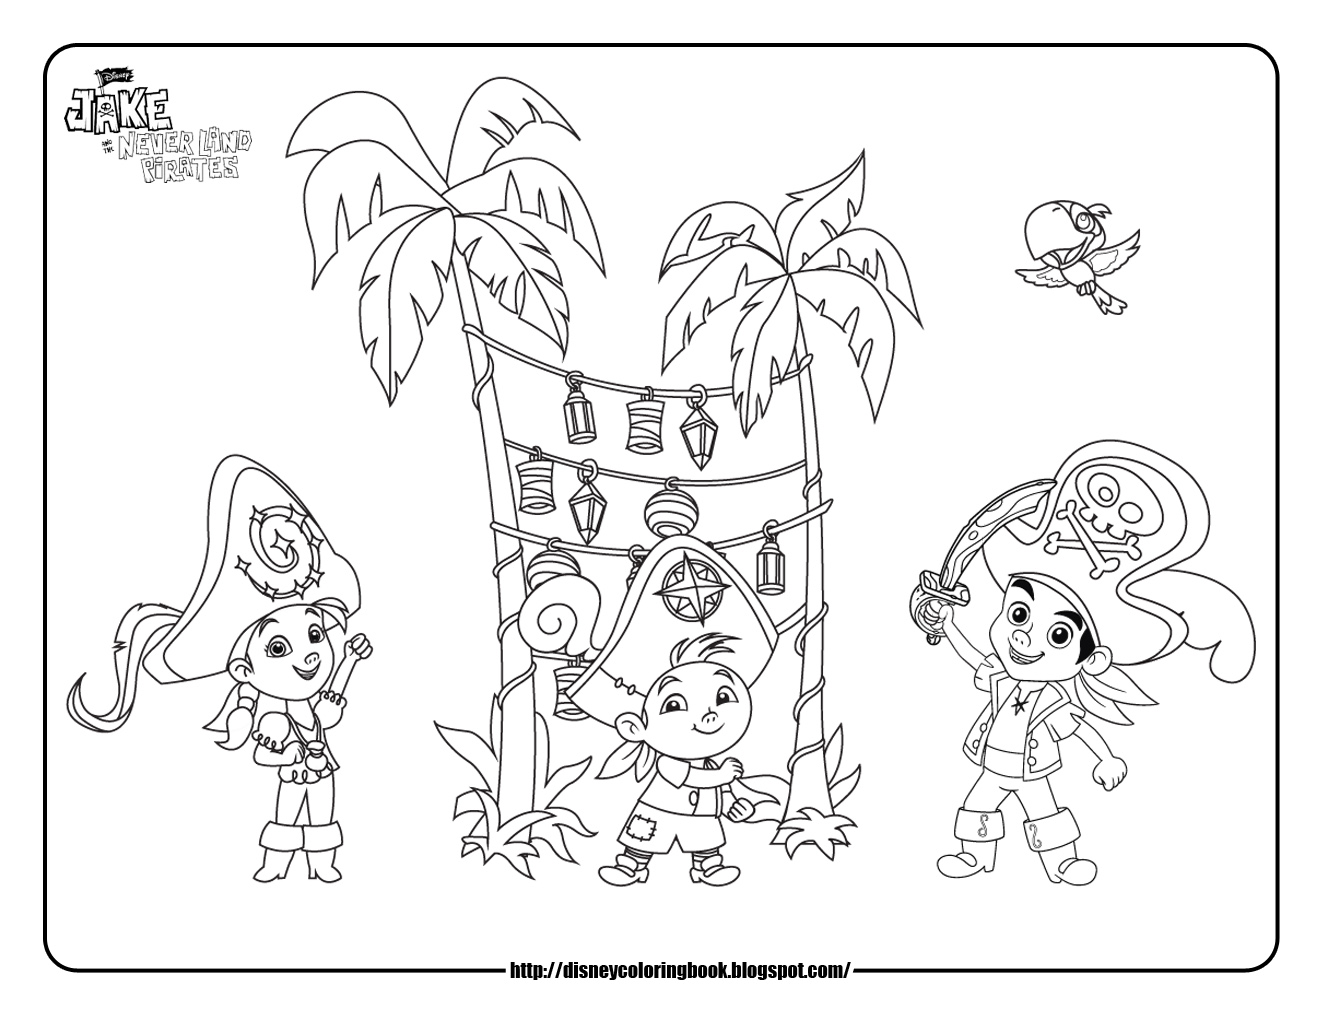 Jake And The Neverland Pirates 3 Free Disney Coloring Sheets Jake And The Neverland Coloring Pages To Print